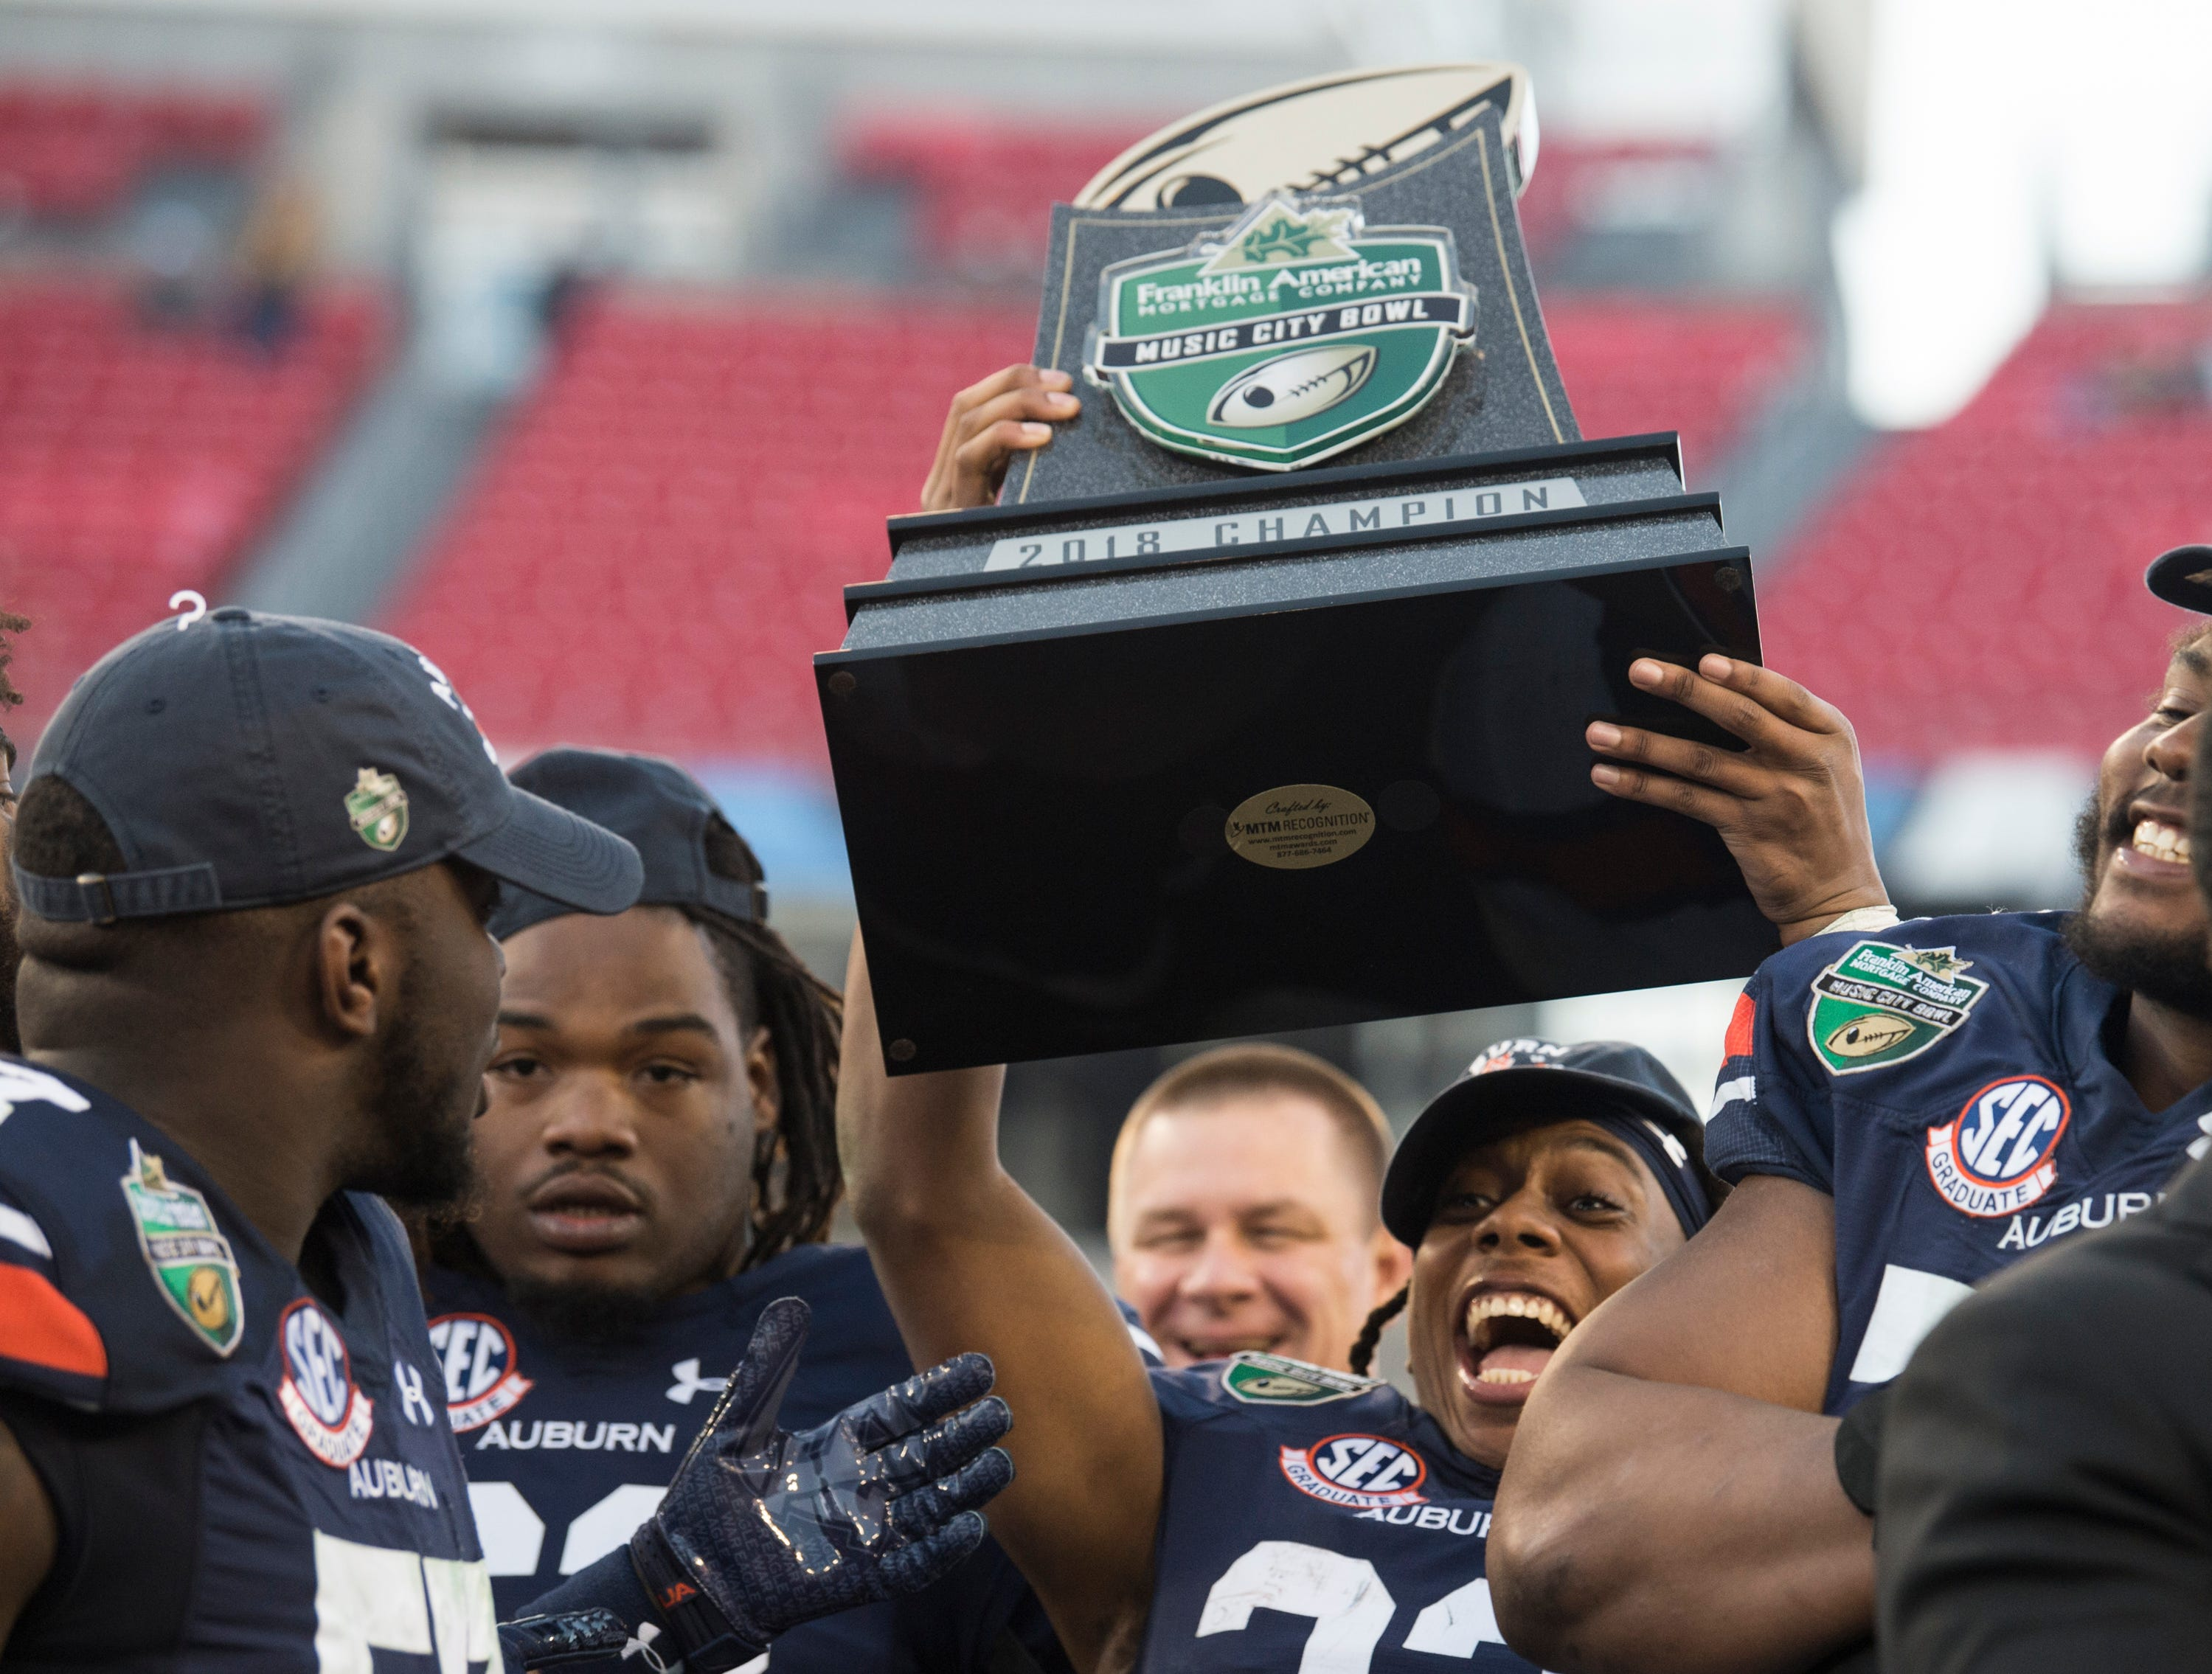 Auburn wide receiver Ryan Davis (23) holds up the trophy after winning the Music City Bowl at Nissan Stadium in Nashville, Tenn., on Friday, Dec. 28, 2018. Auburn defeated Purdue 63-14.